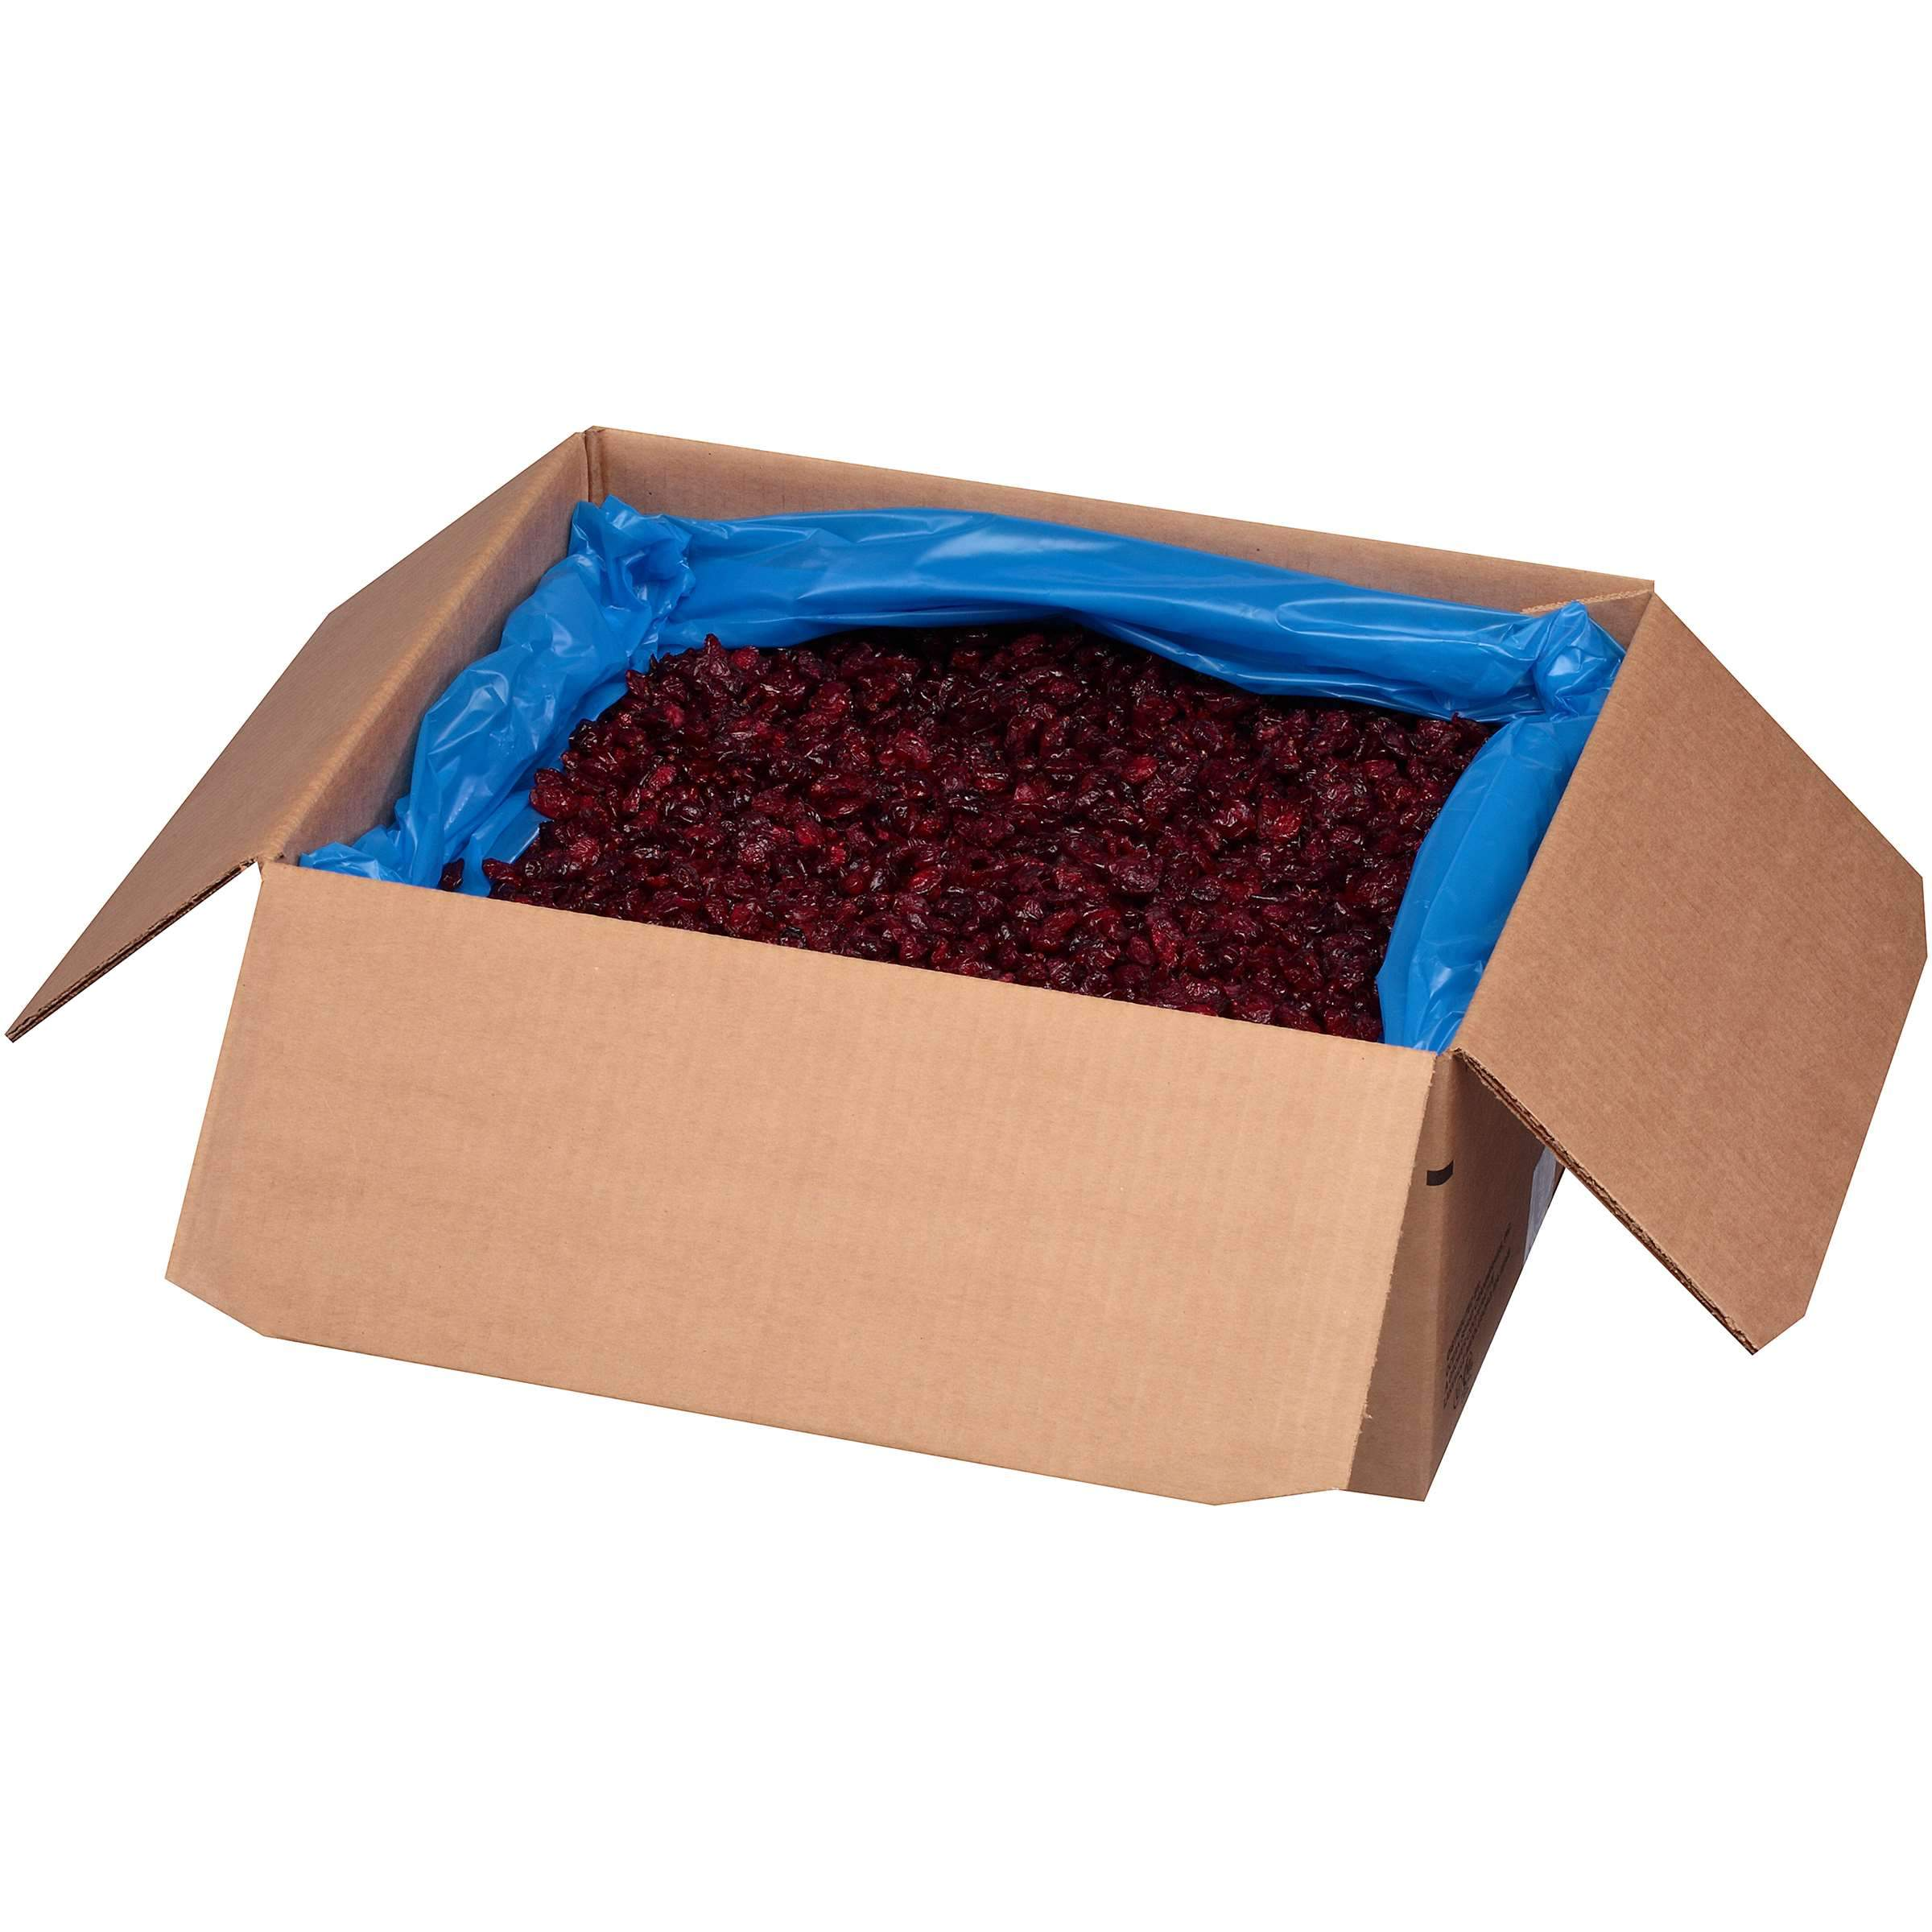 Ocean Spray Craisins, Dried Cranberries Ocean Spray Original 25 Pound